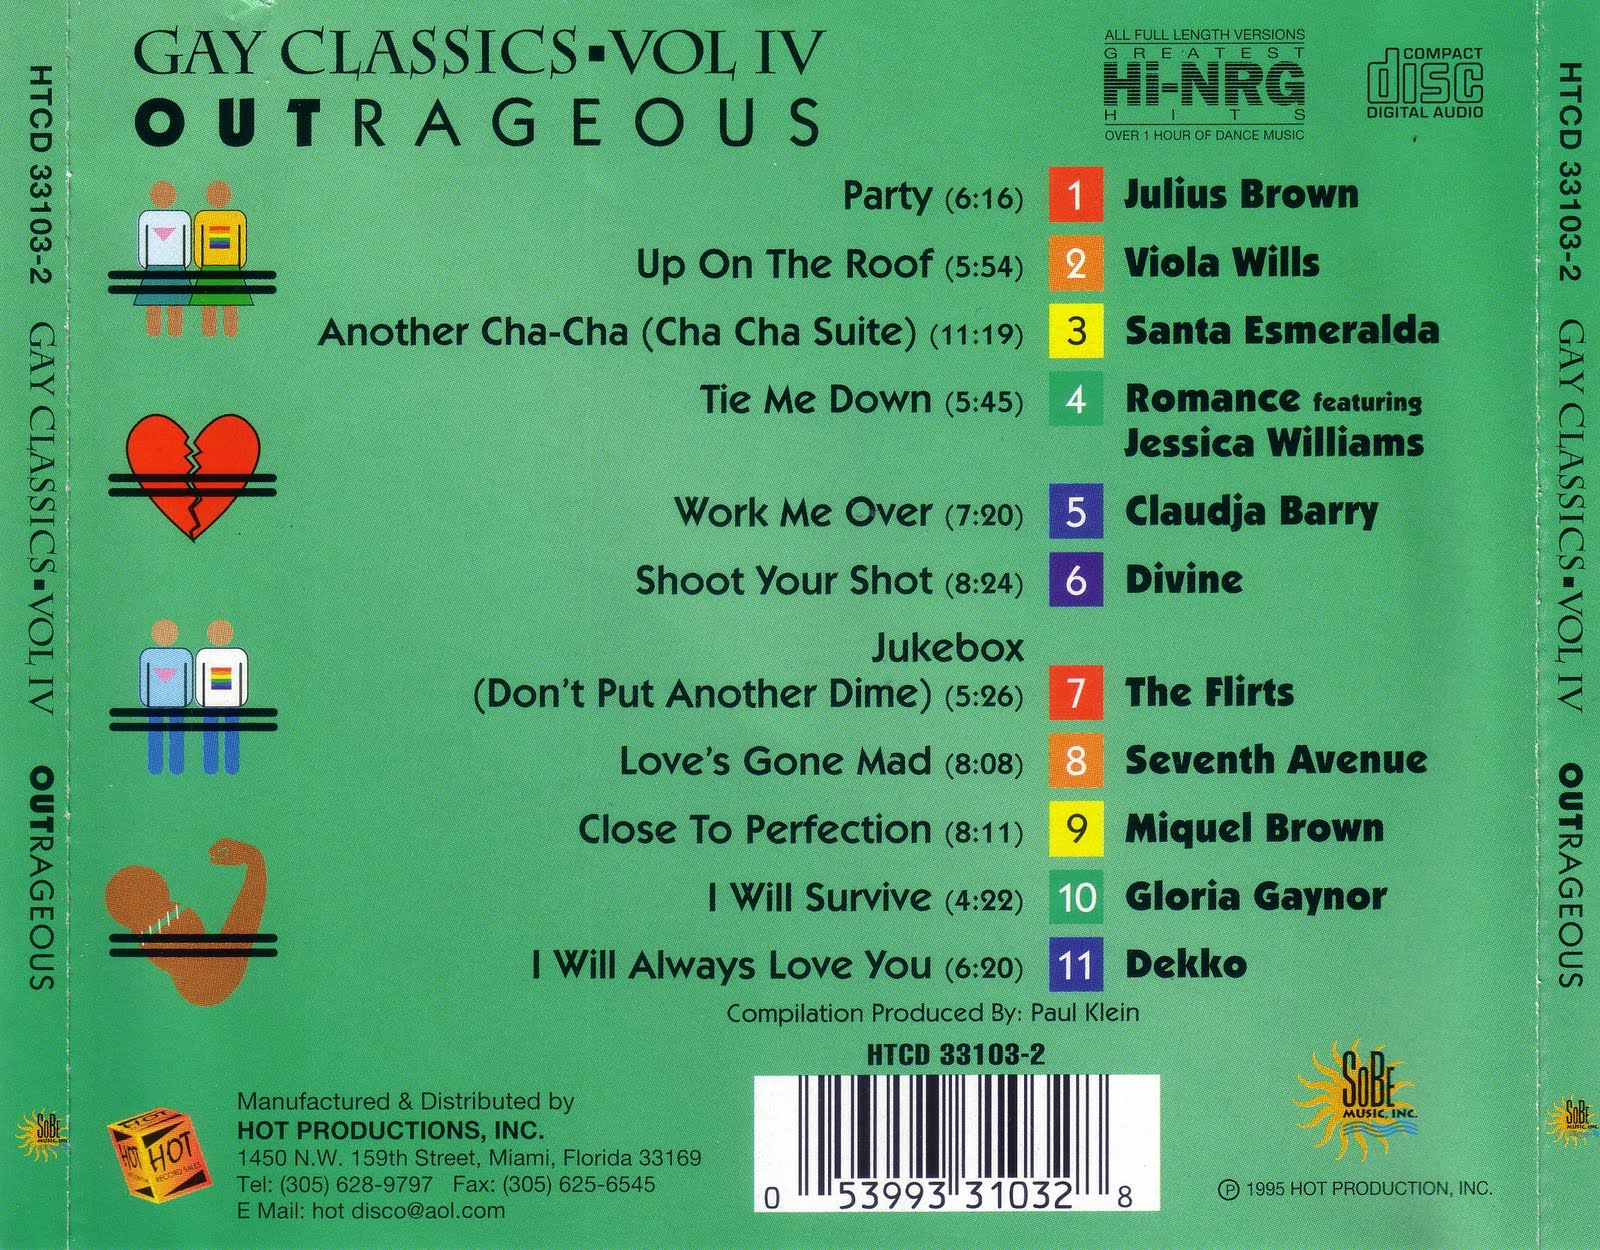 Gay Classics, Vol. 2 Outstanding - Various Artists